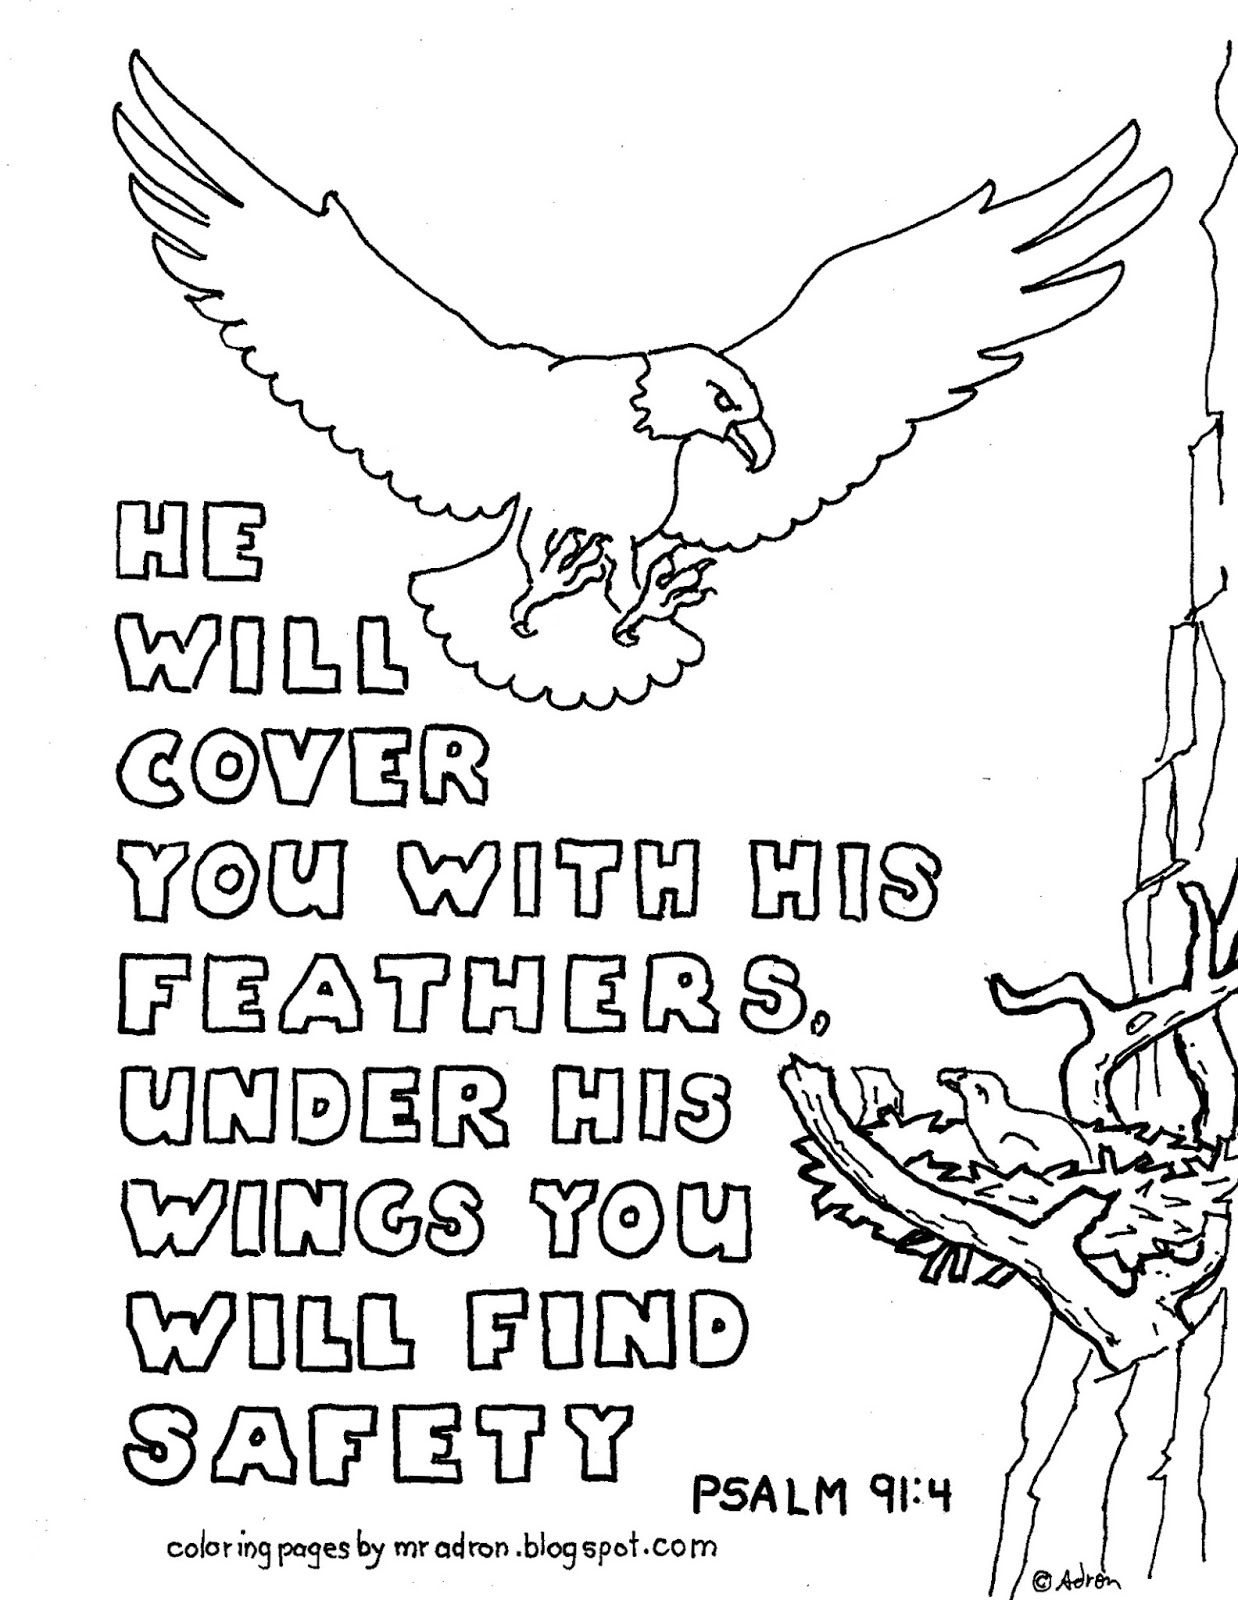 Coloring Pages For Kids By Mr Adron Printable Coloring Page Psalm 91 4 He Will Co Bible Verse Coloring Page Bible Verse Coloring Sunday School Coloring Pages